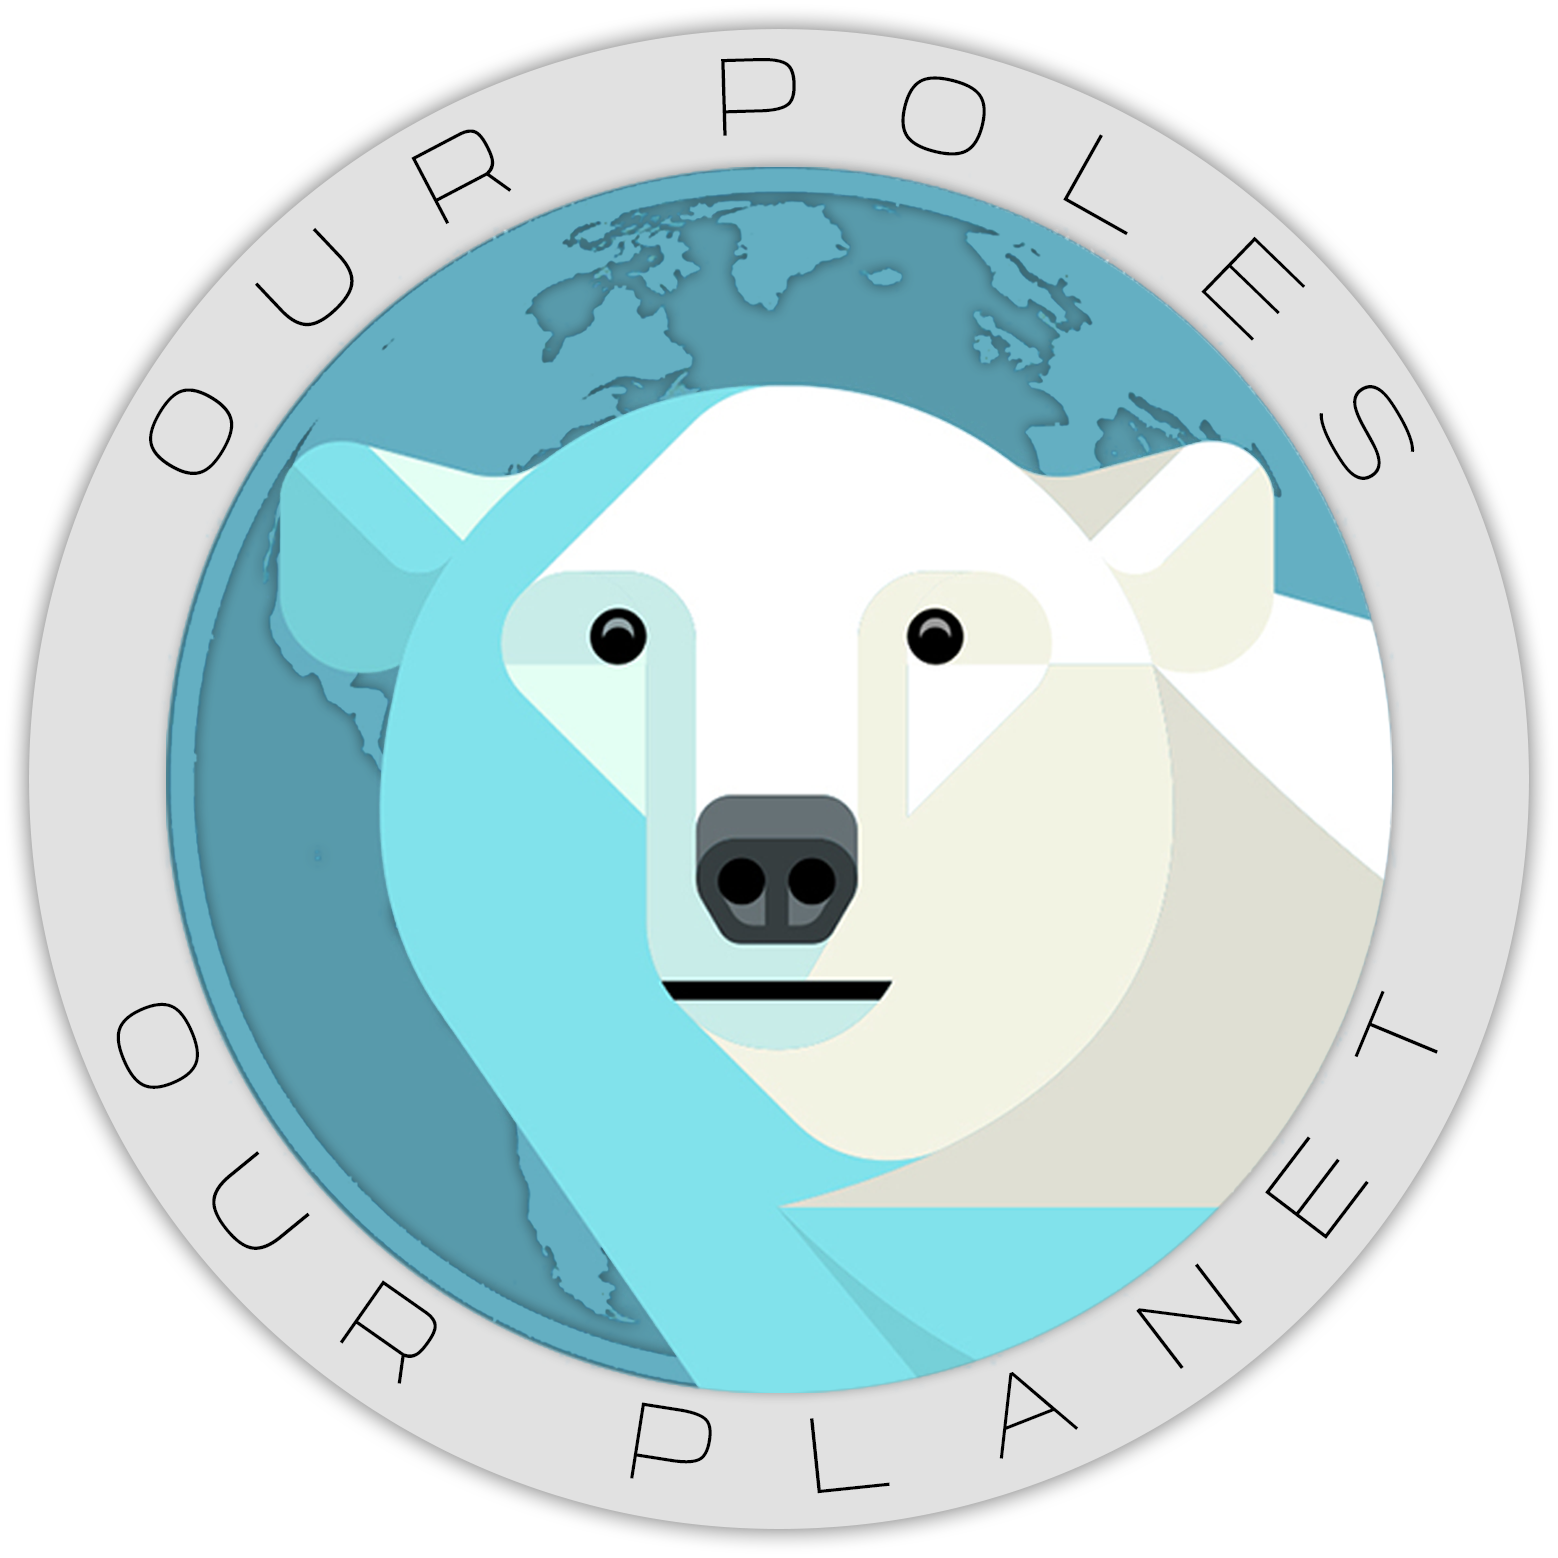 Our poles Our Planet logo